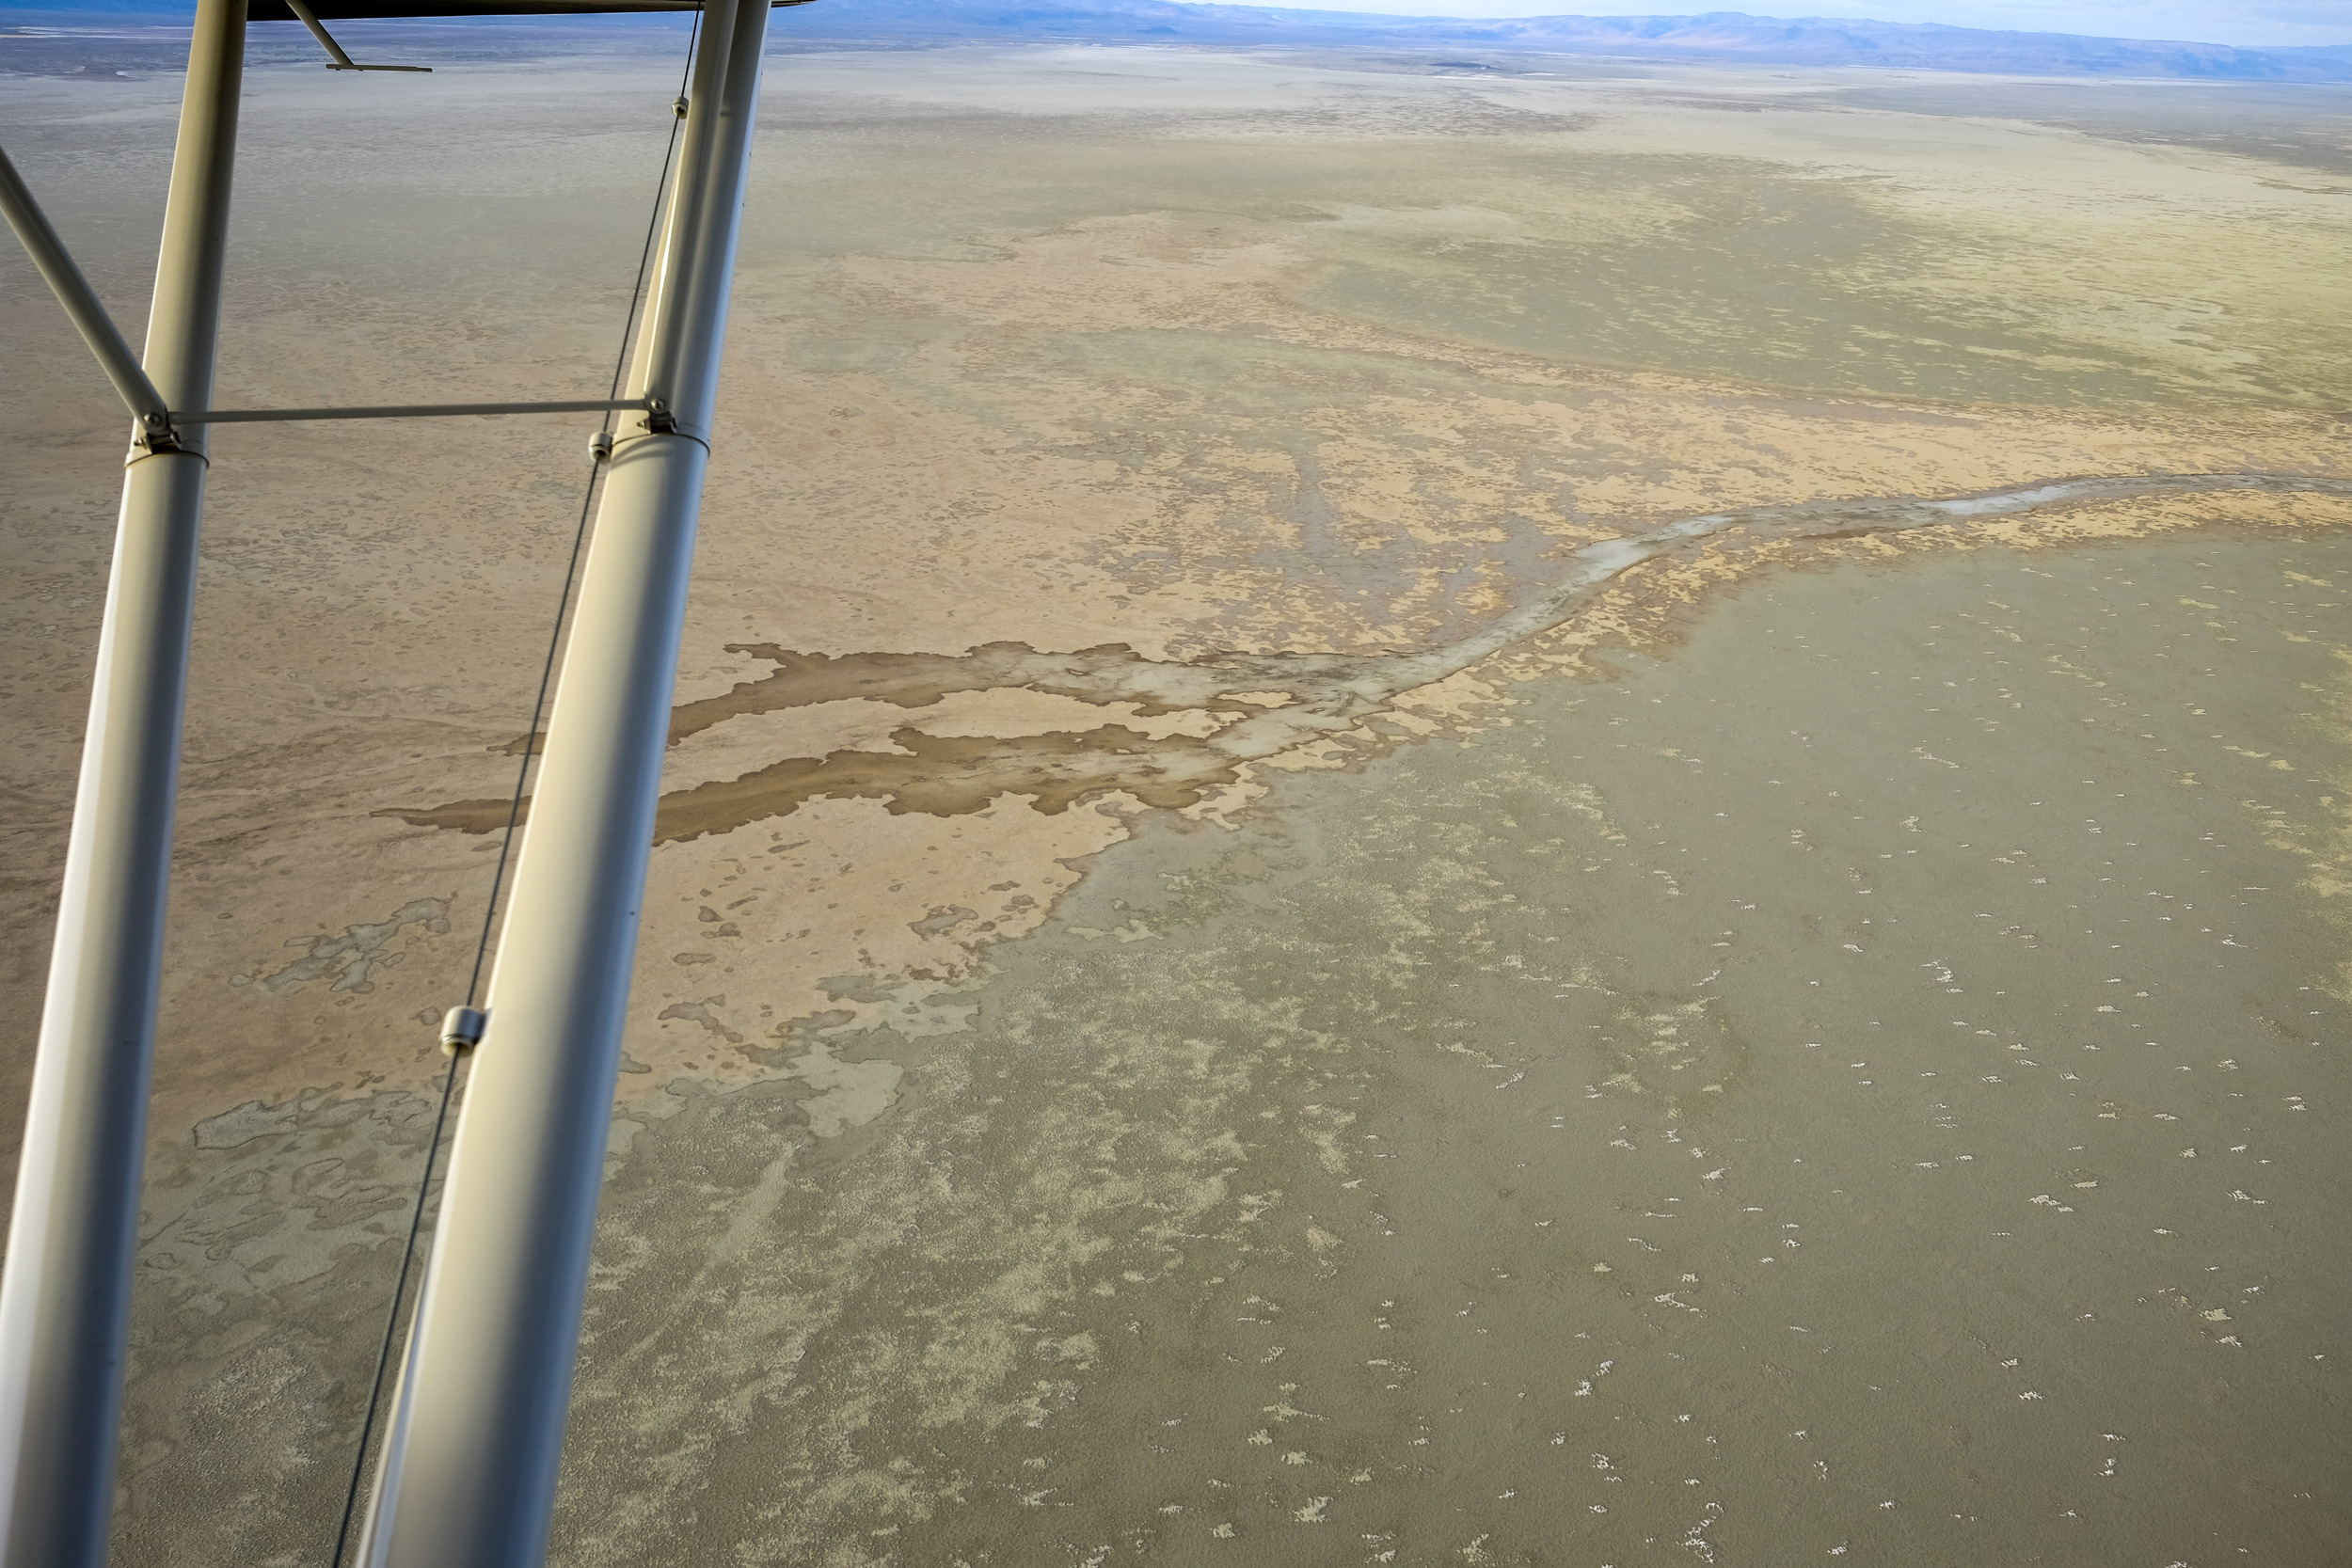 Here is some of the terrain we flew over day to day.